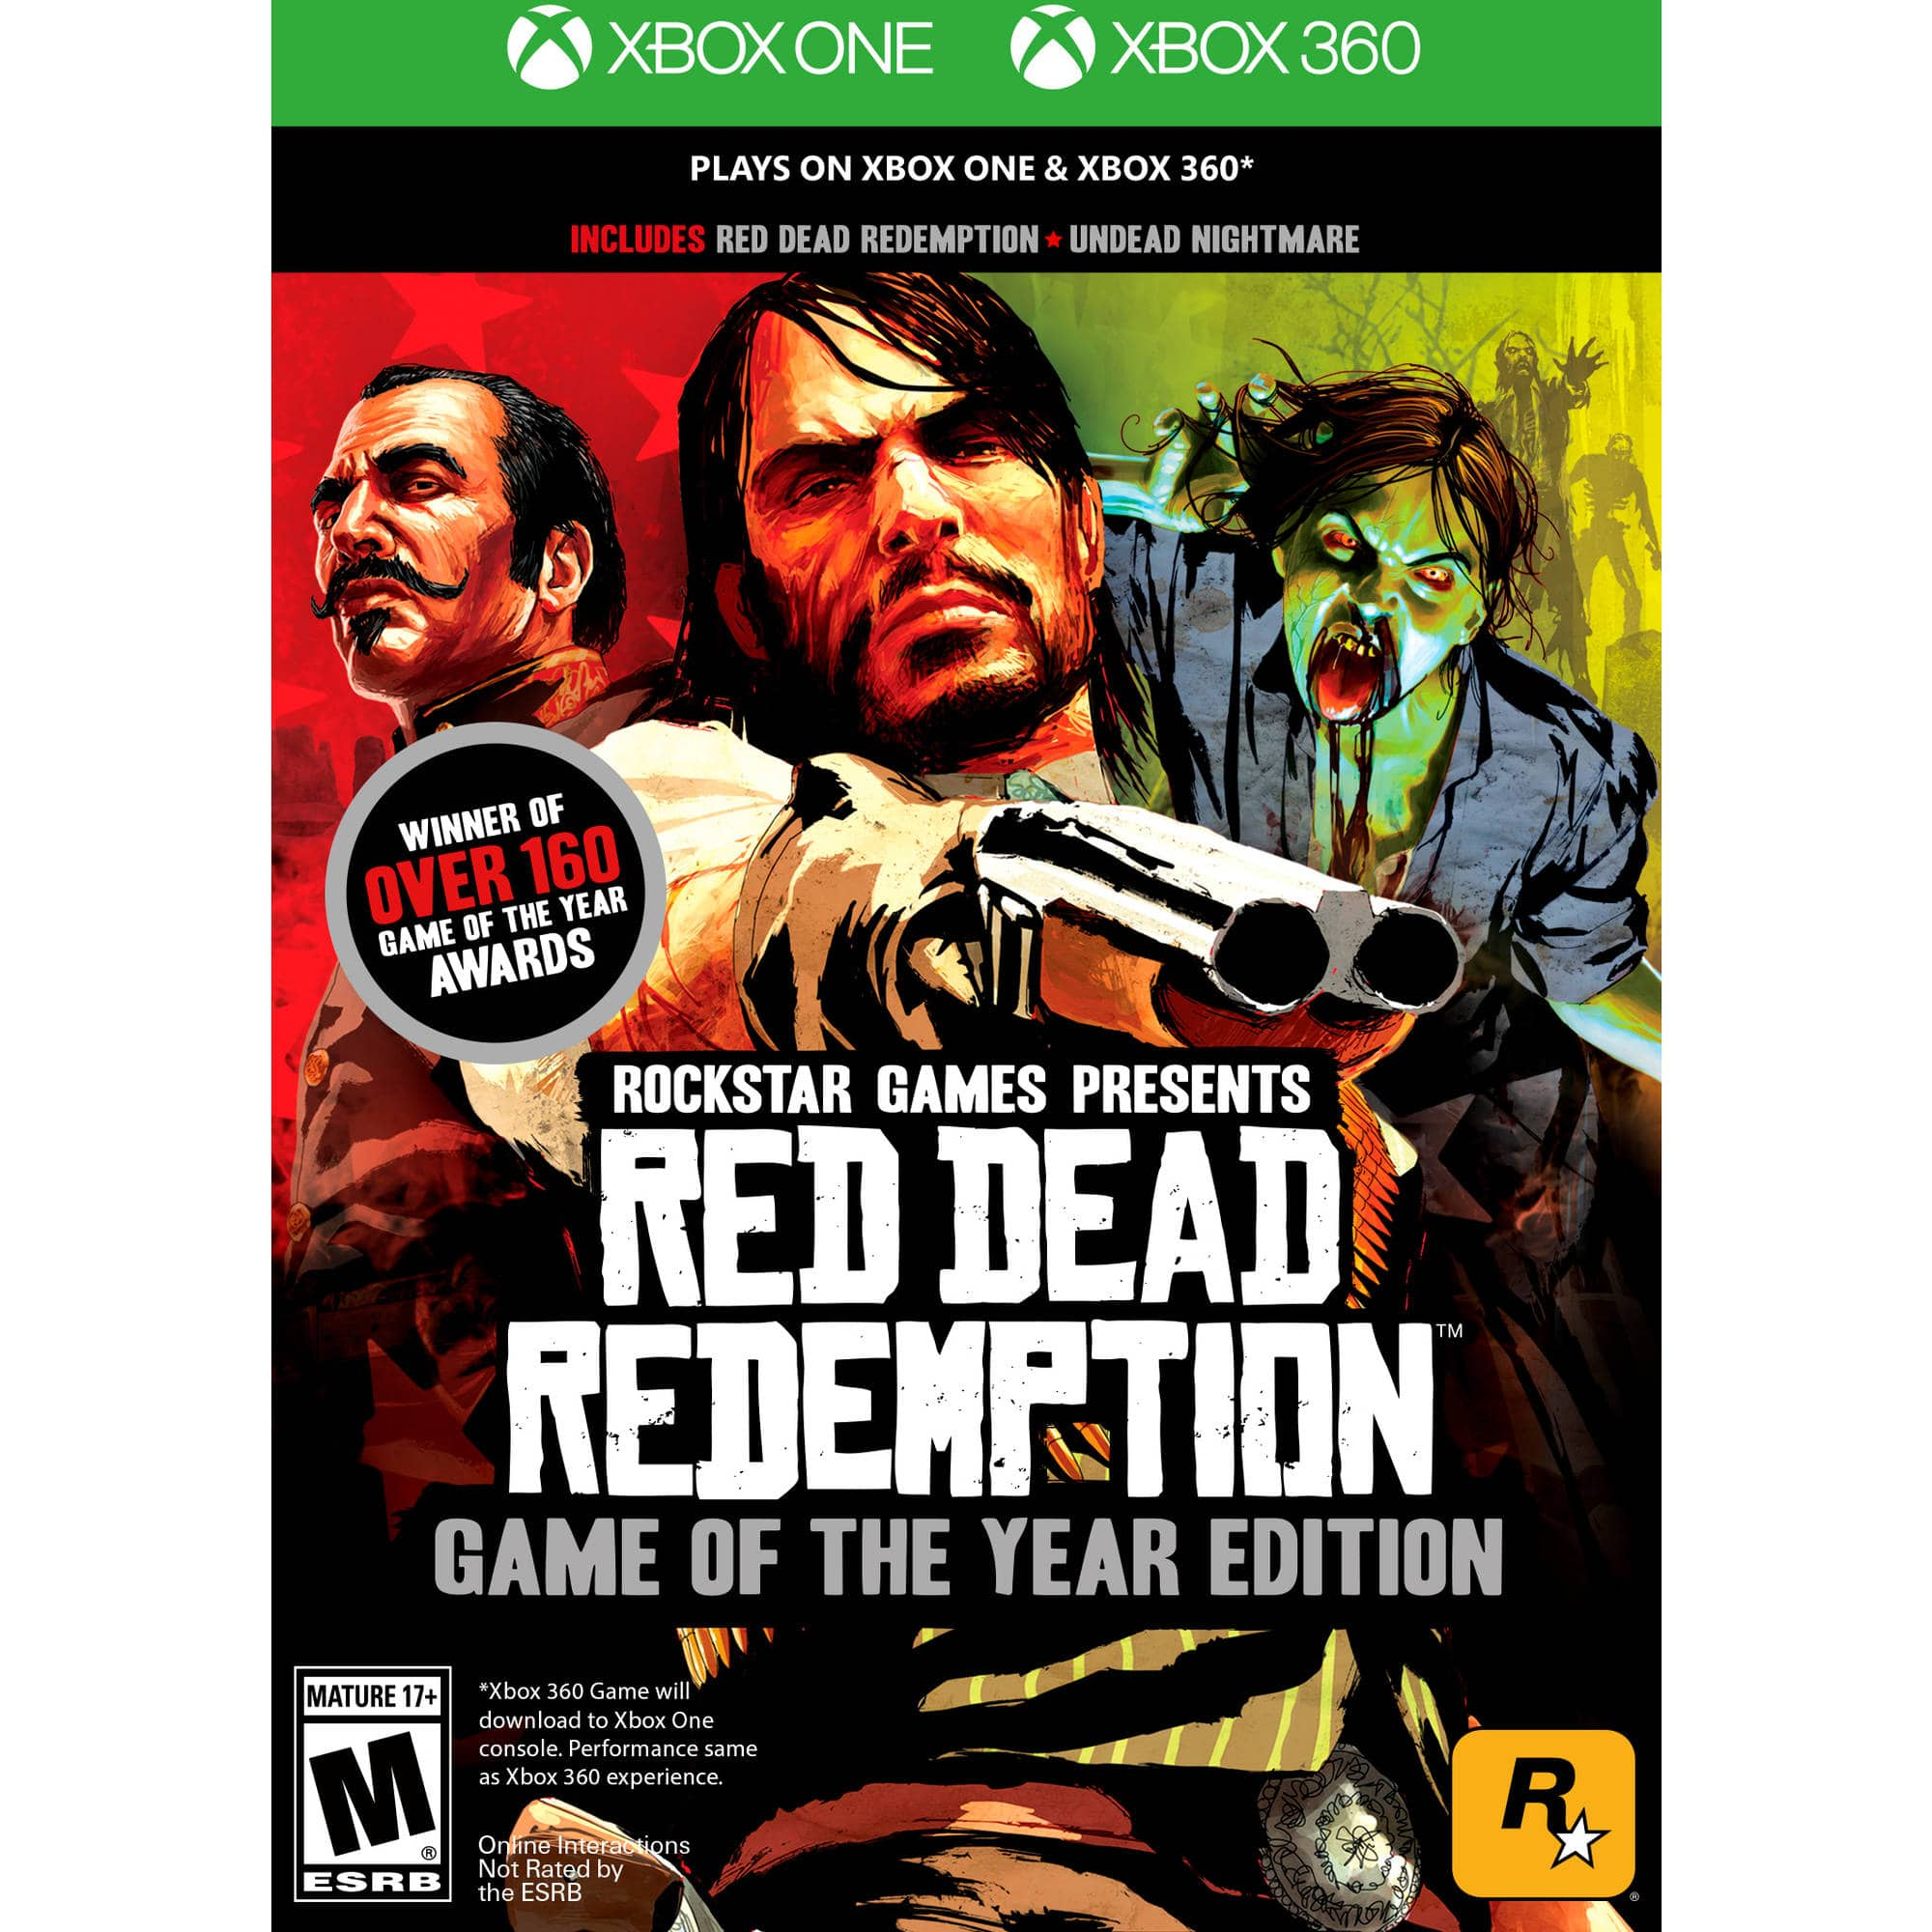 Red Dead Redemption: Game of the Year (Xbox) - $12.5